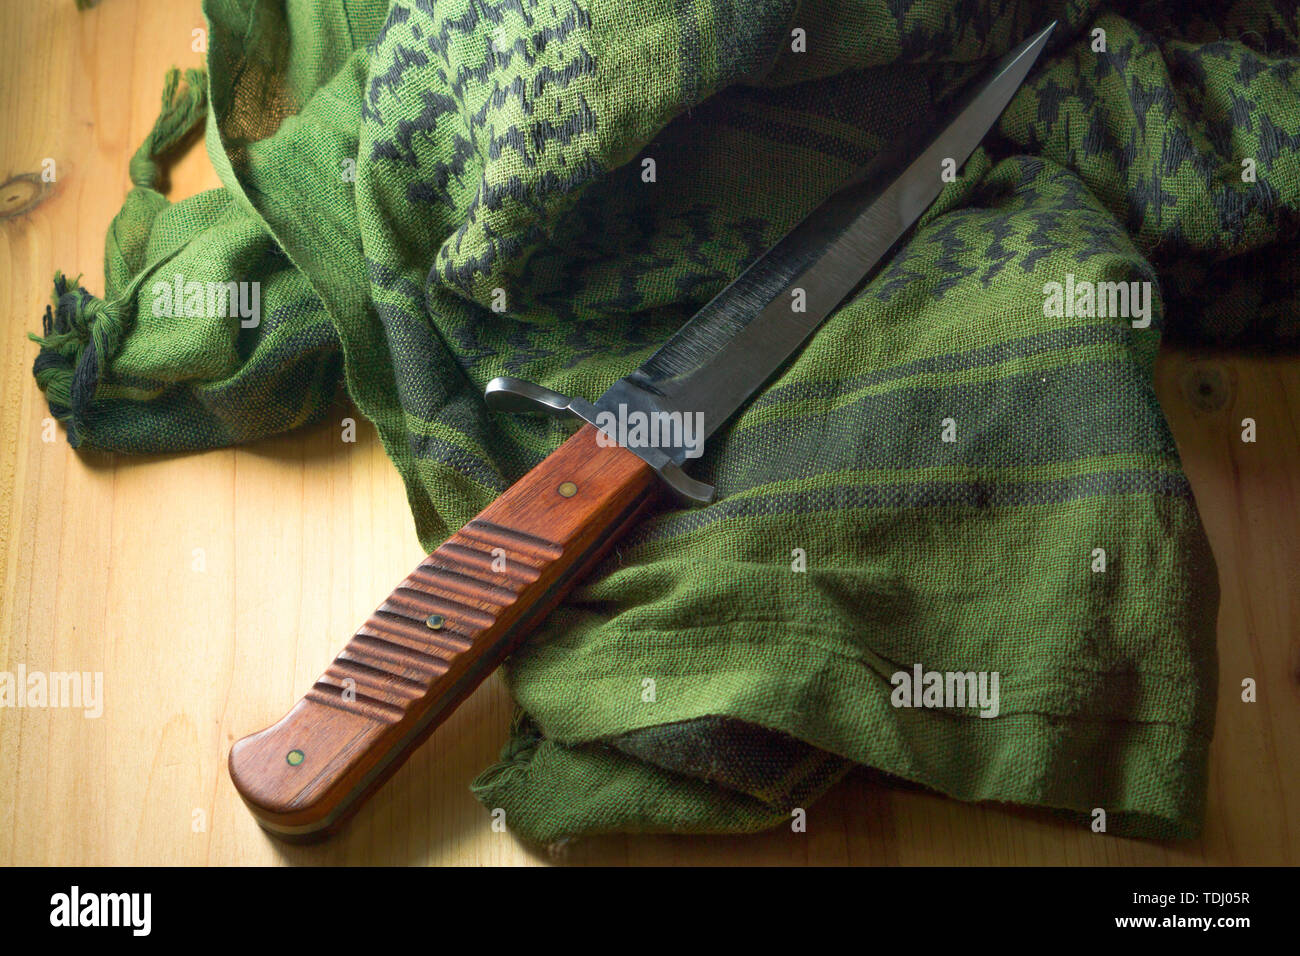 combat knife with a wooden handle, green shemagh - Stock Image